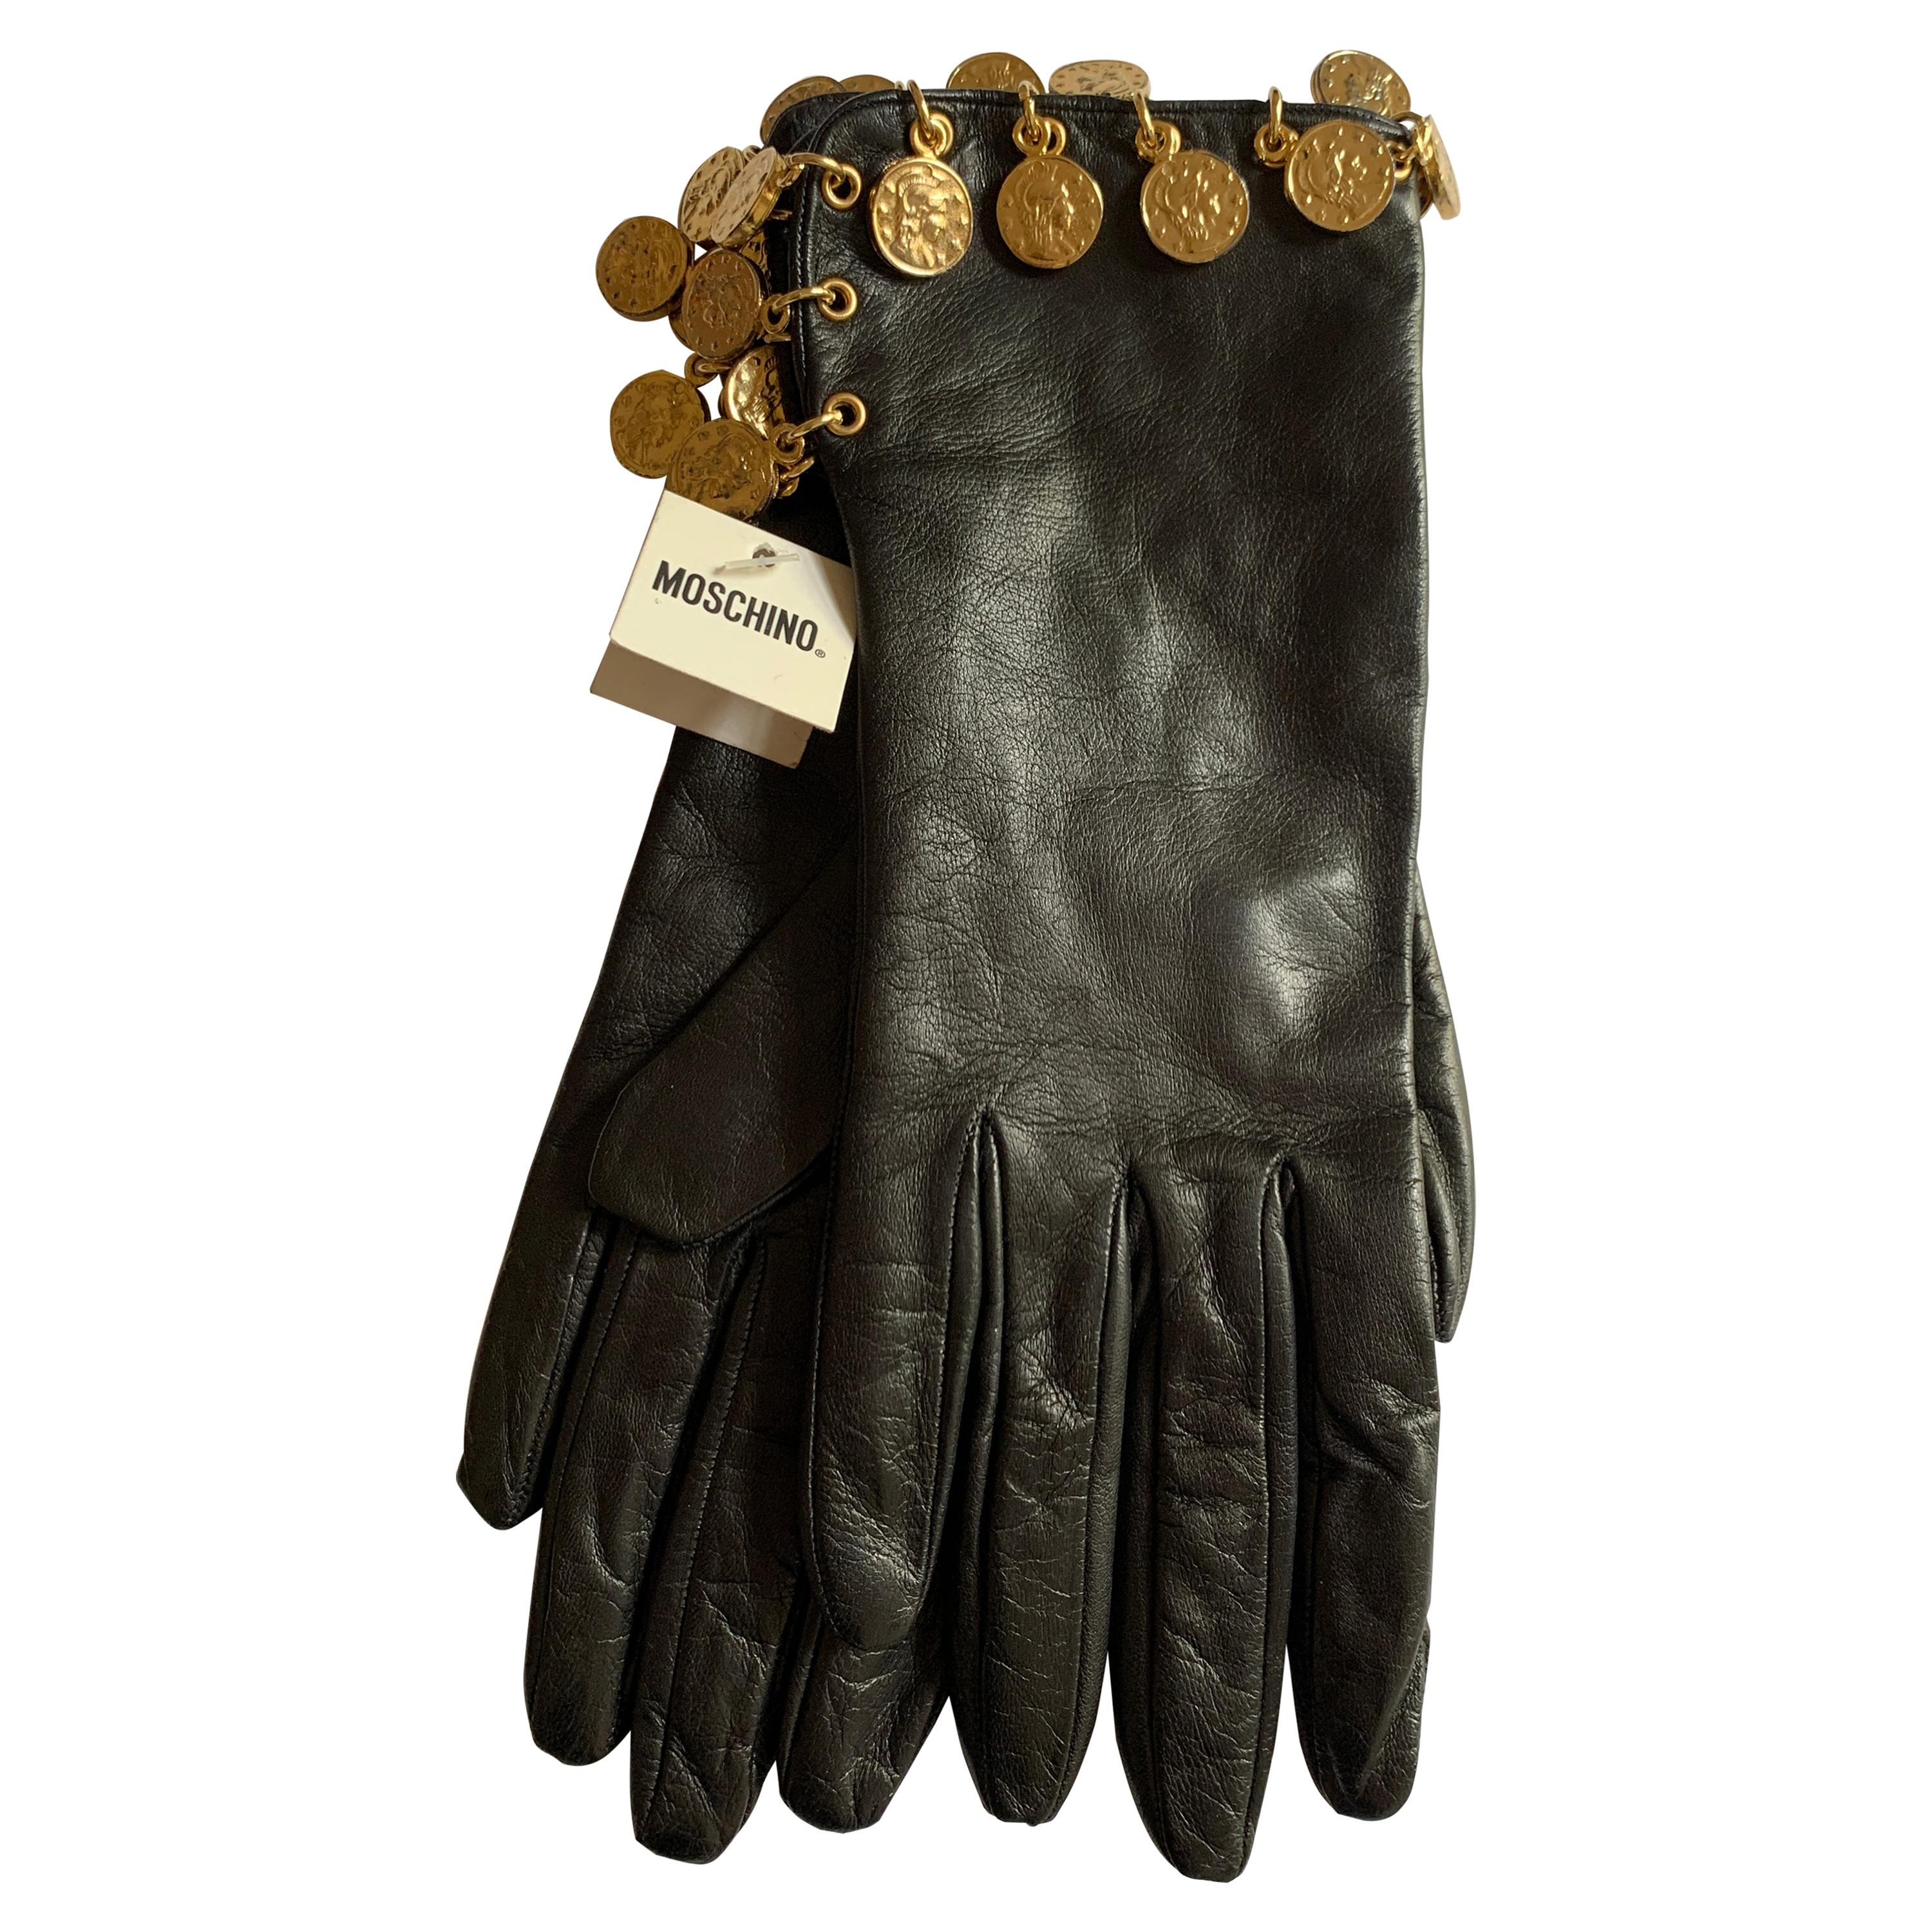 Unworn 1990s Moschino Black Leather Gold Roman Coin Charm Gloves